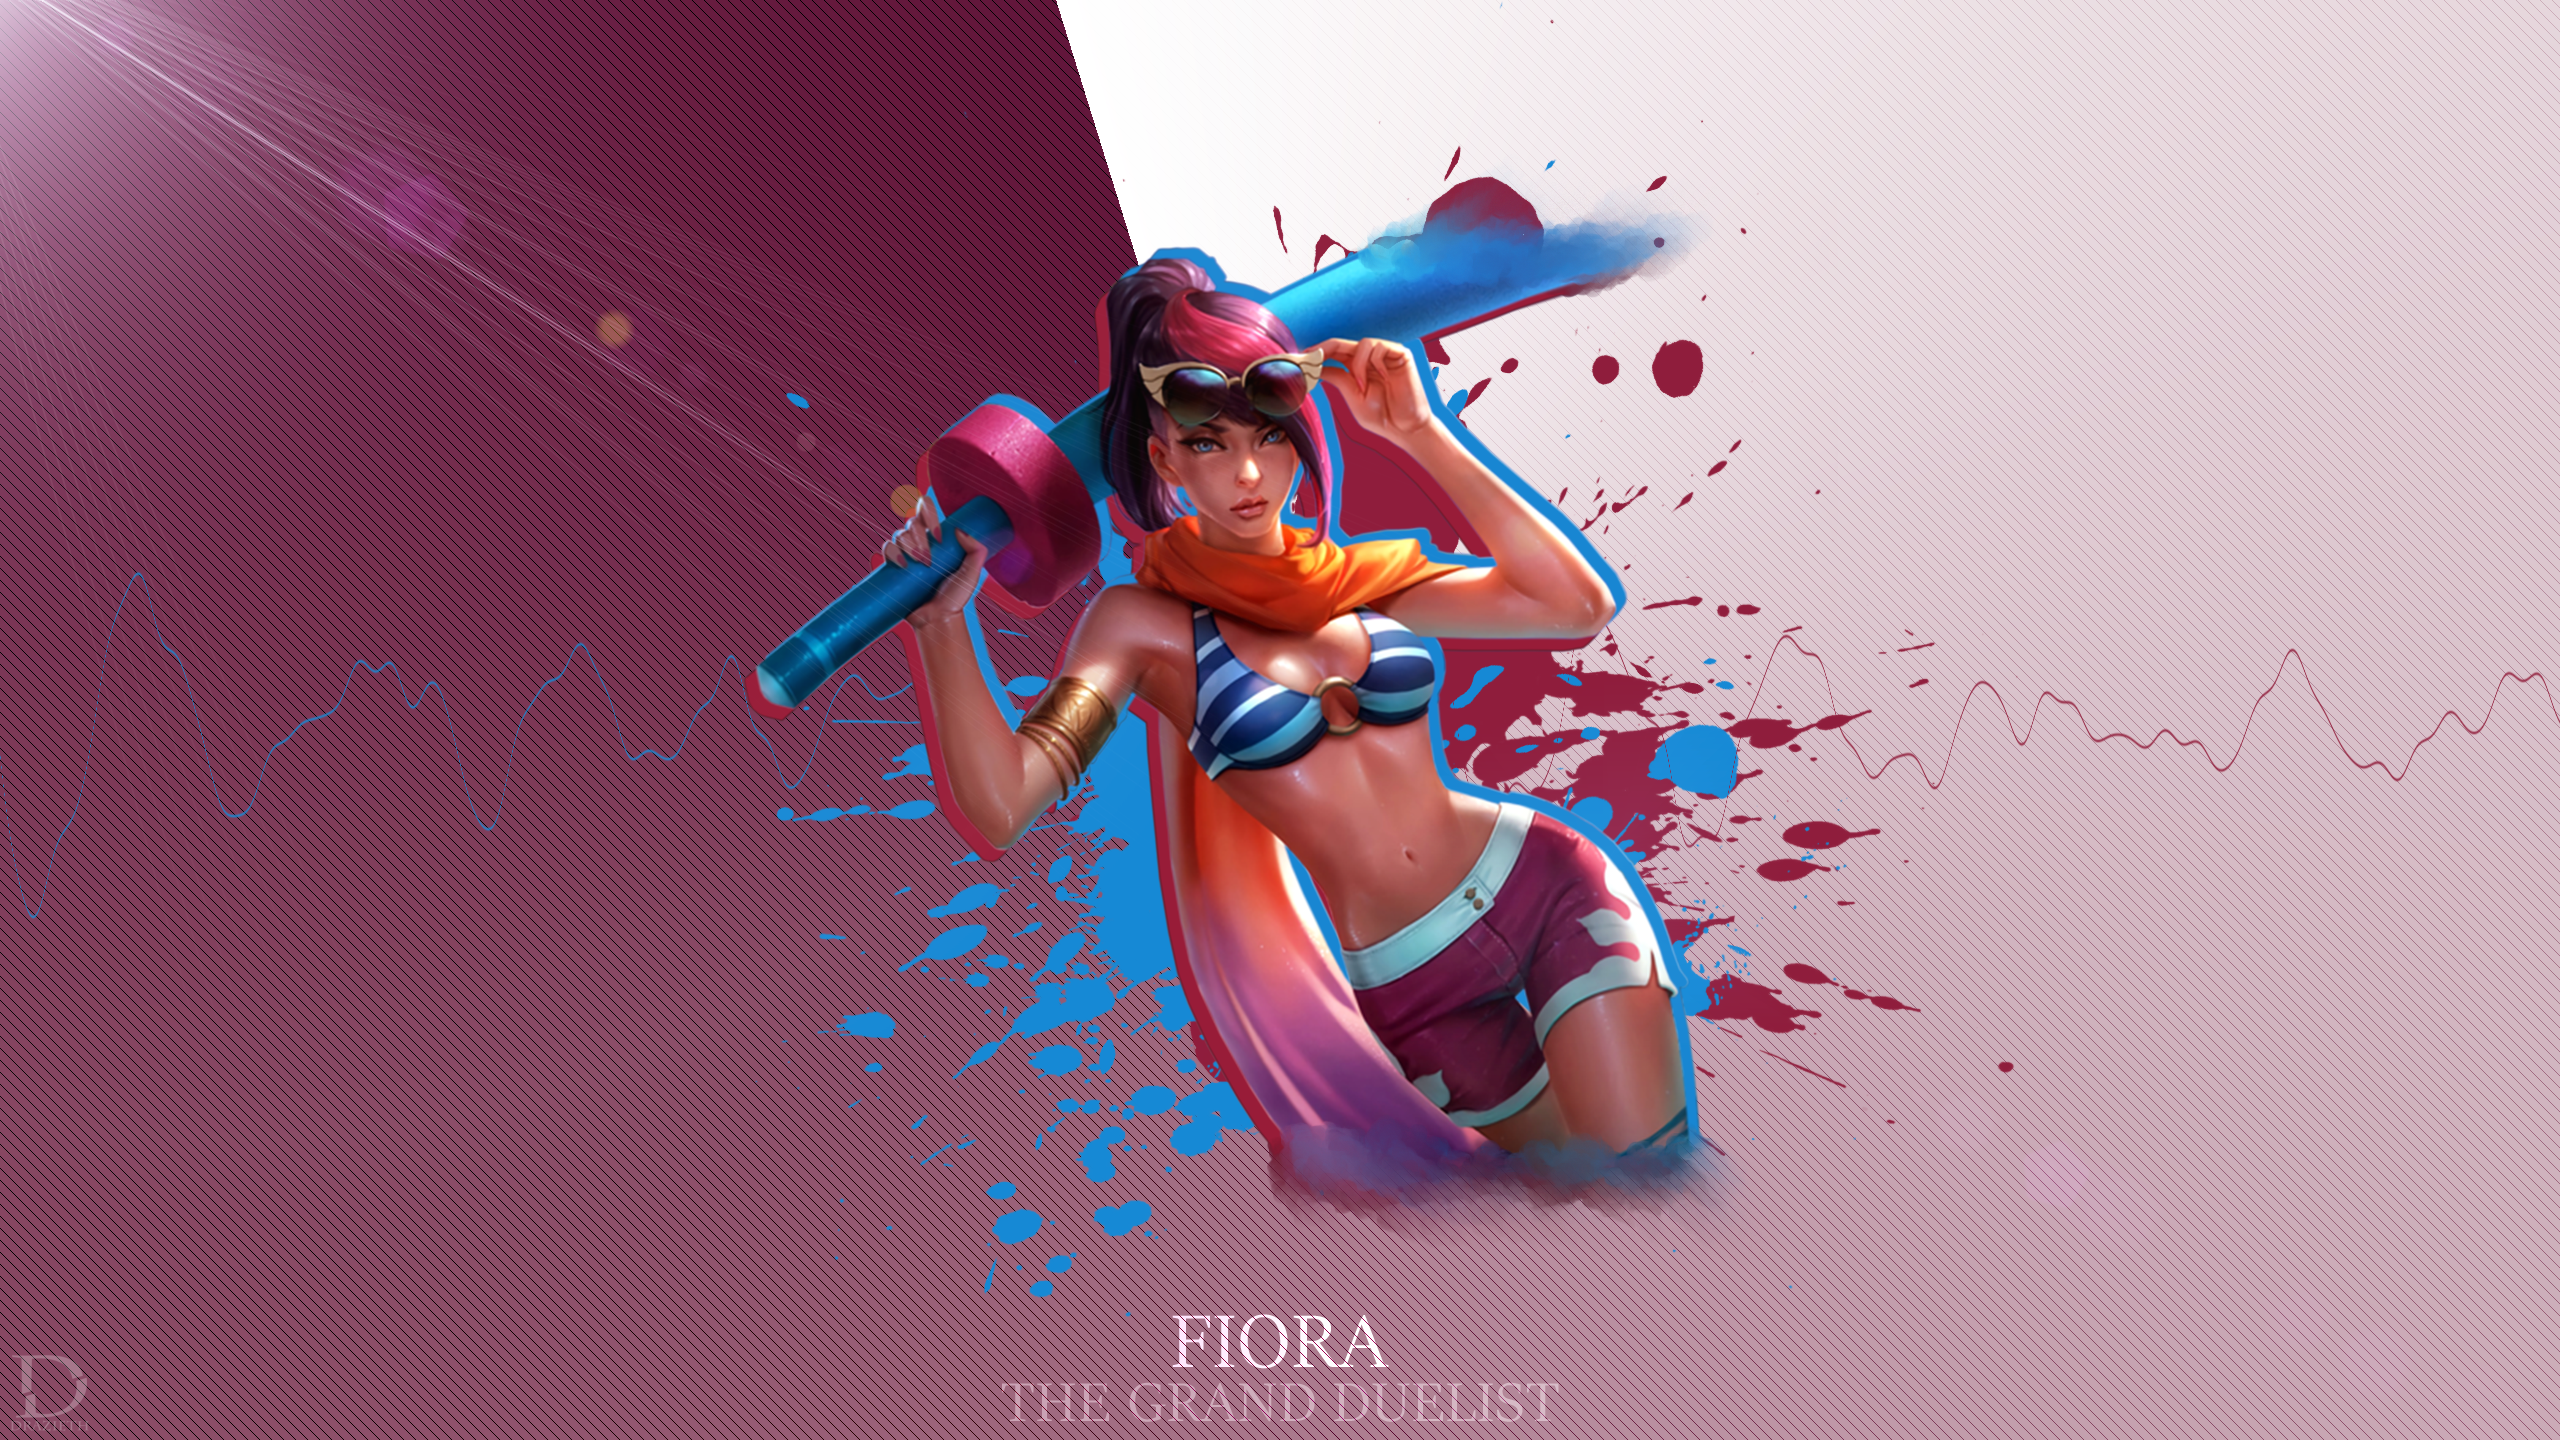 Pool Party Fiora League Of Legends Wallpaper By Drazieth On